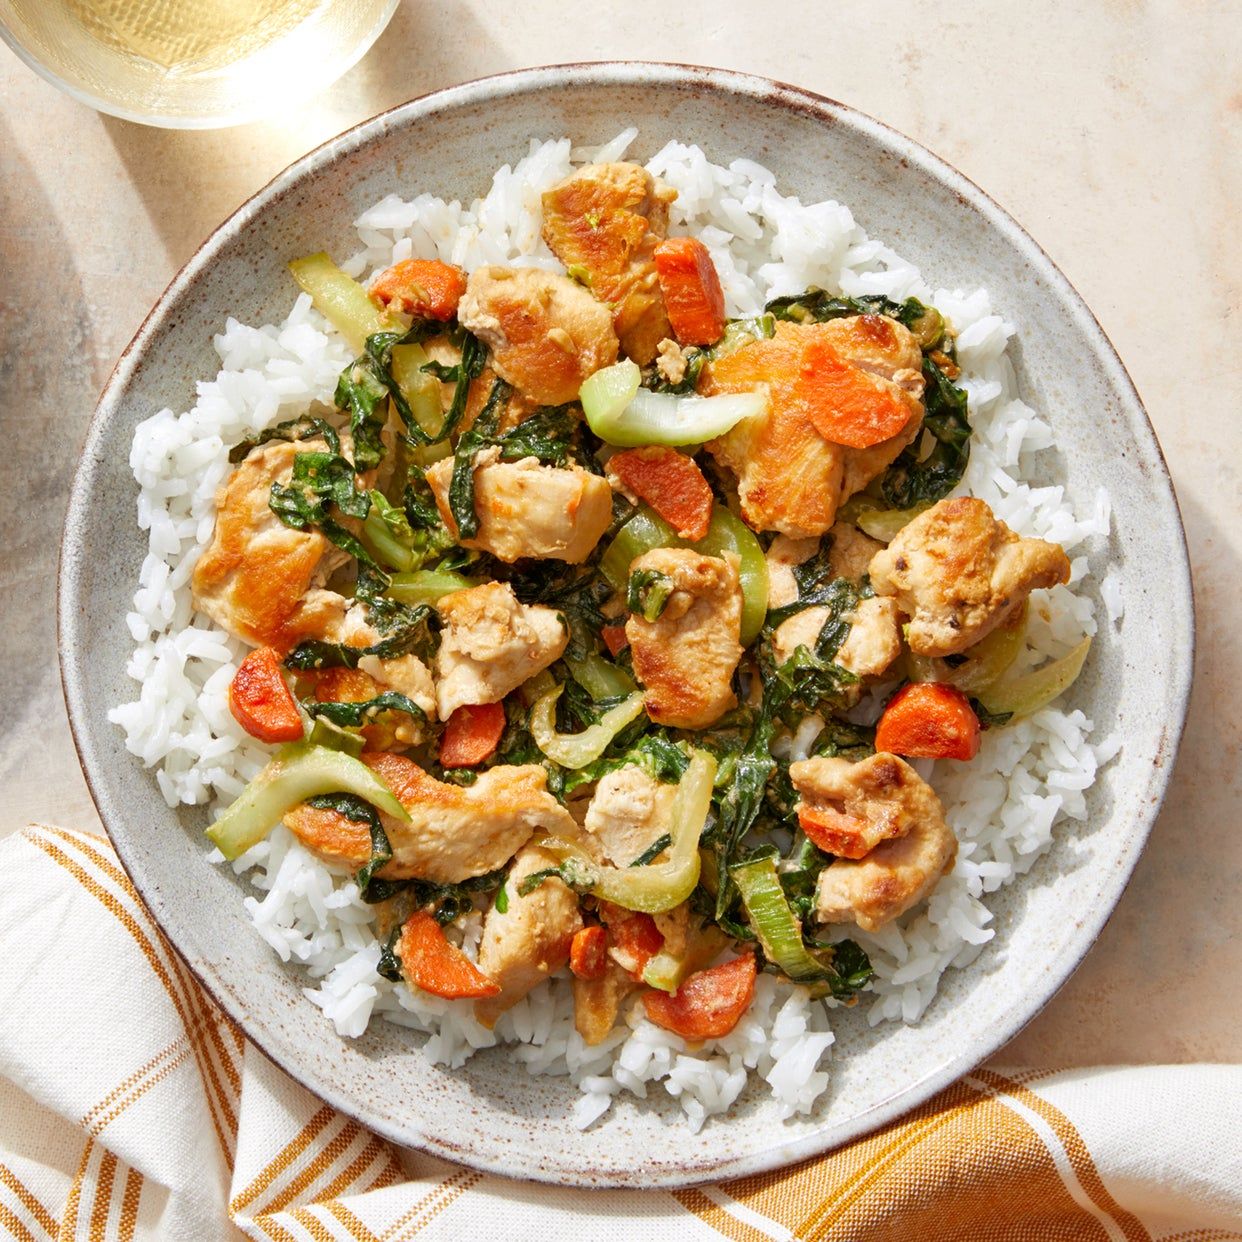 Chicken & Vegetable Stir-Fry with Spicy Ponzu Sauce